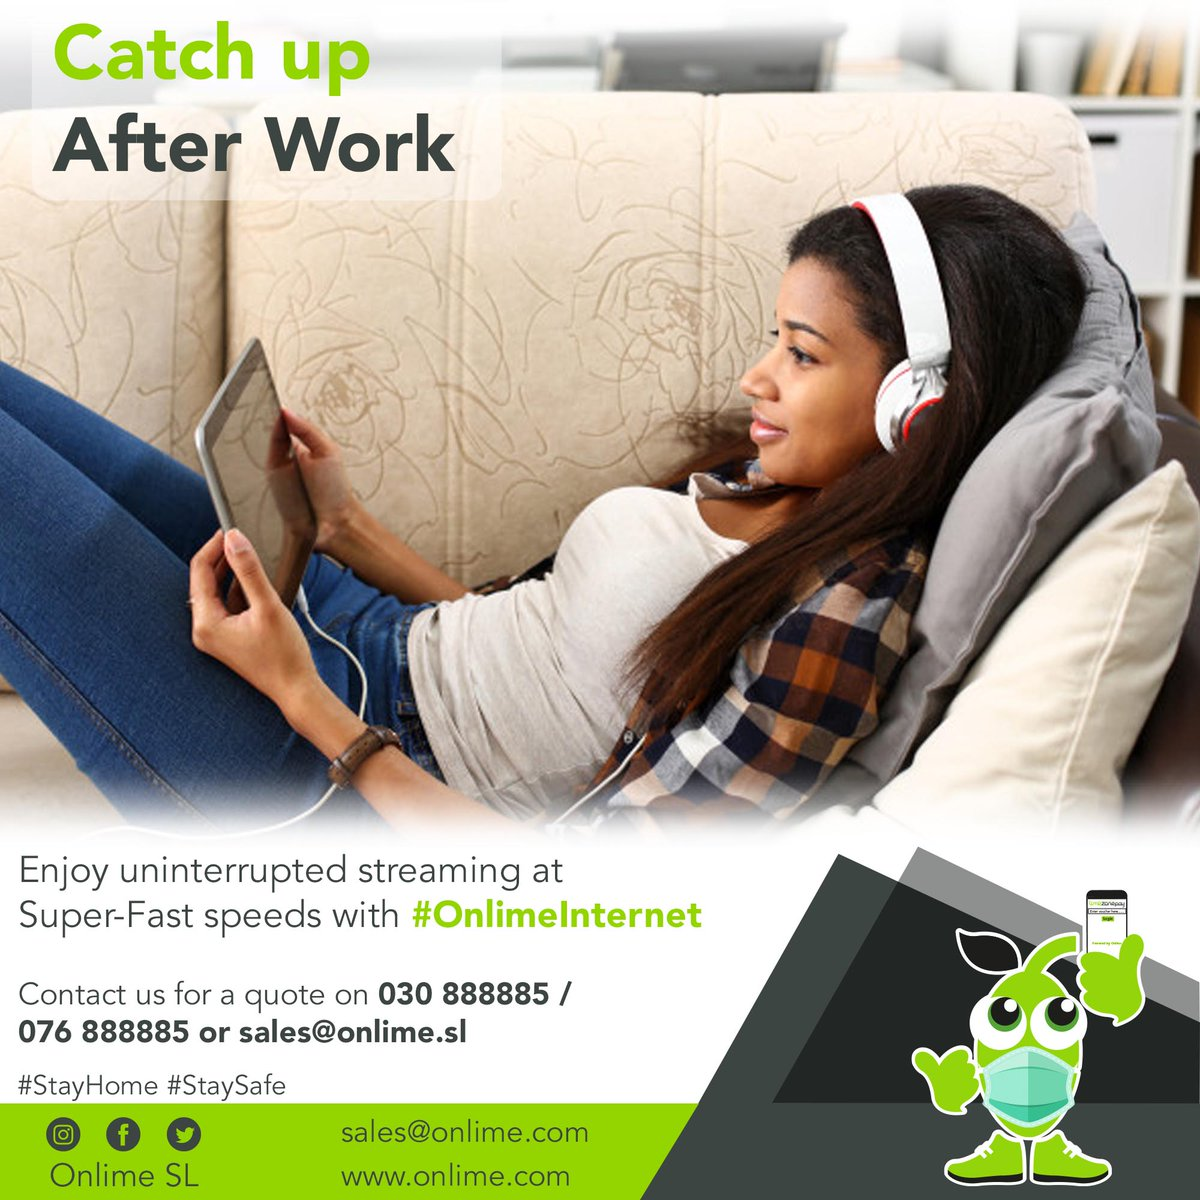 If you are an employee, you will probably need internet to catch up with your favorite shows online after work. Enjoy uninterrupted streaming at Super-Fast Speeds with #OnlimeInternet Call 076 888885 / 030 888885 or email sales@onlime.sl for more info. #SierraLeone #Freetown https://t.co/p2QR7Ab21m